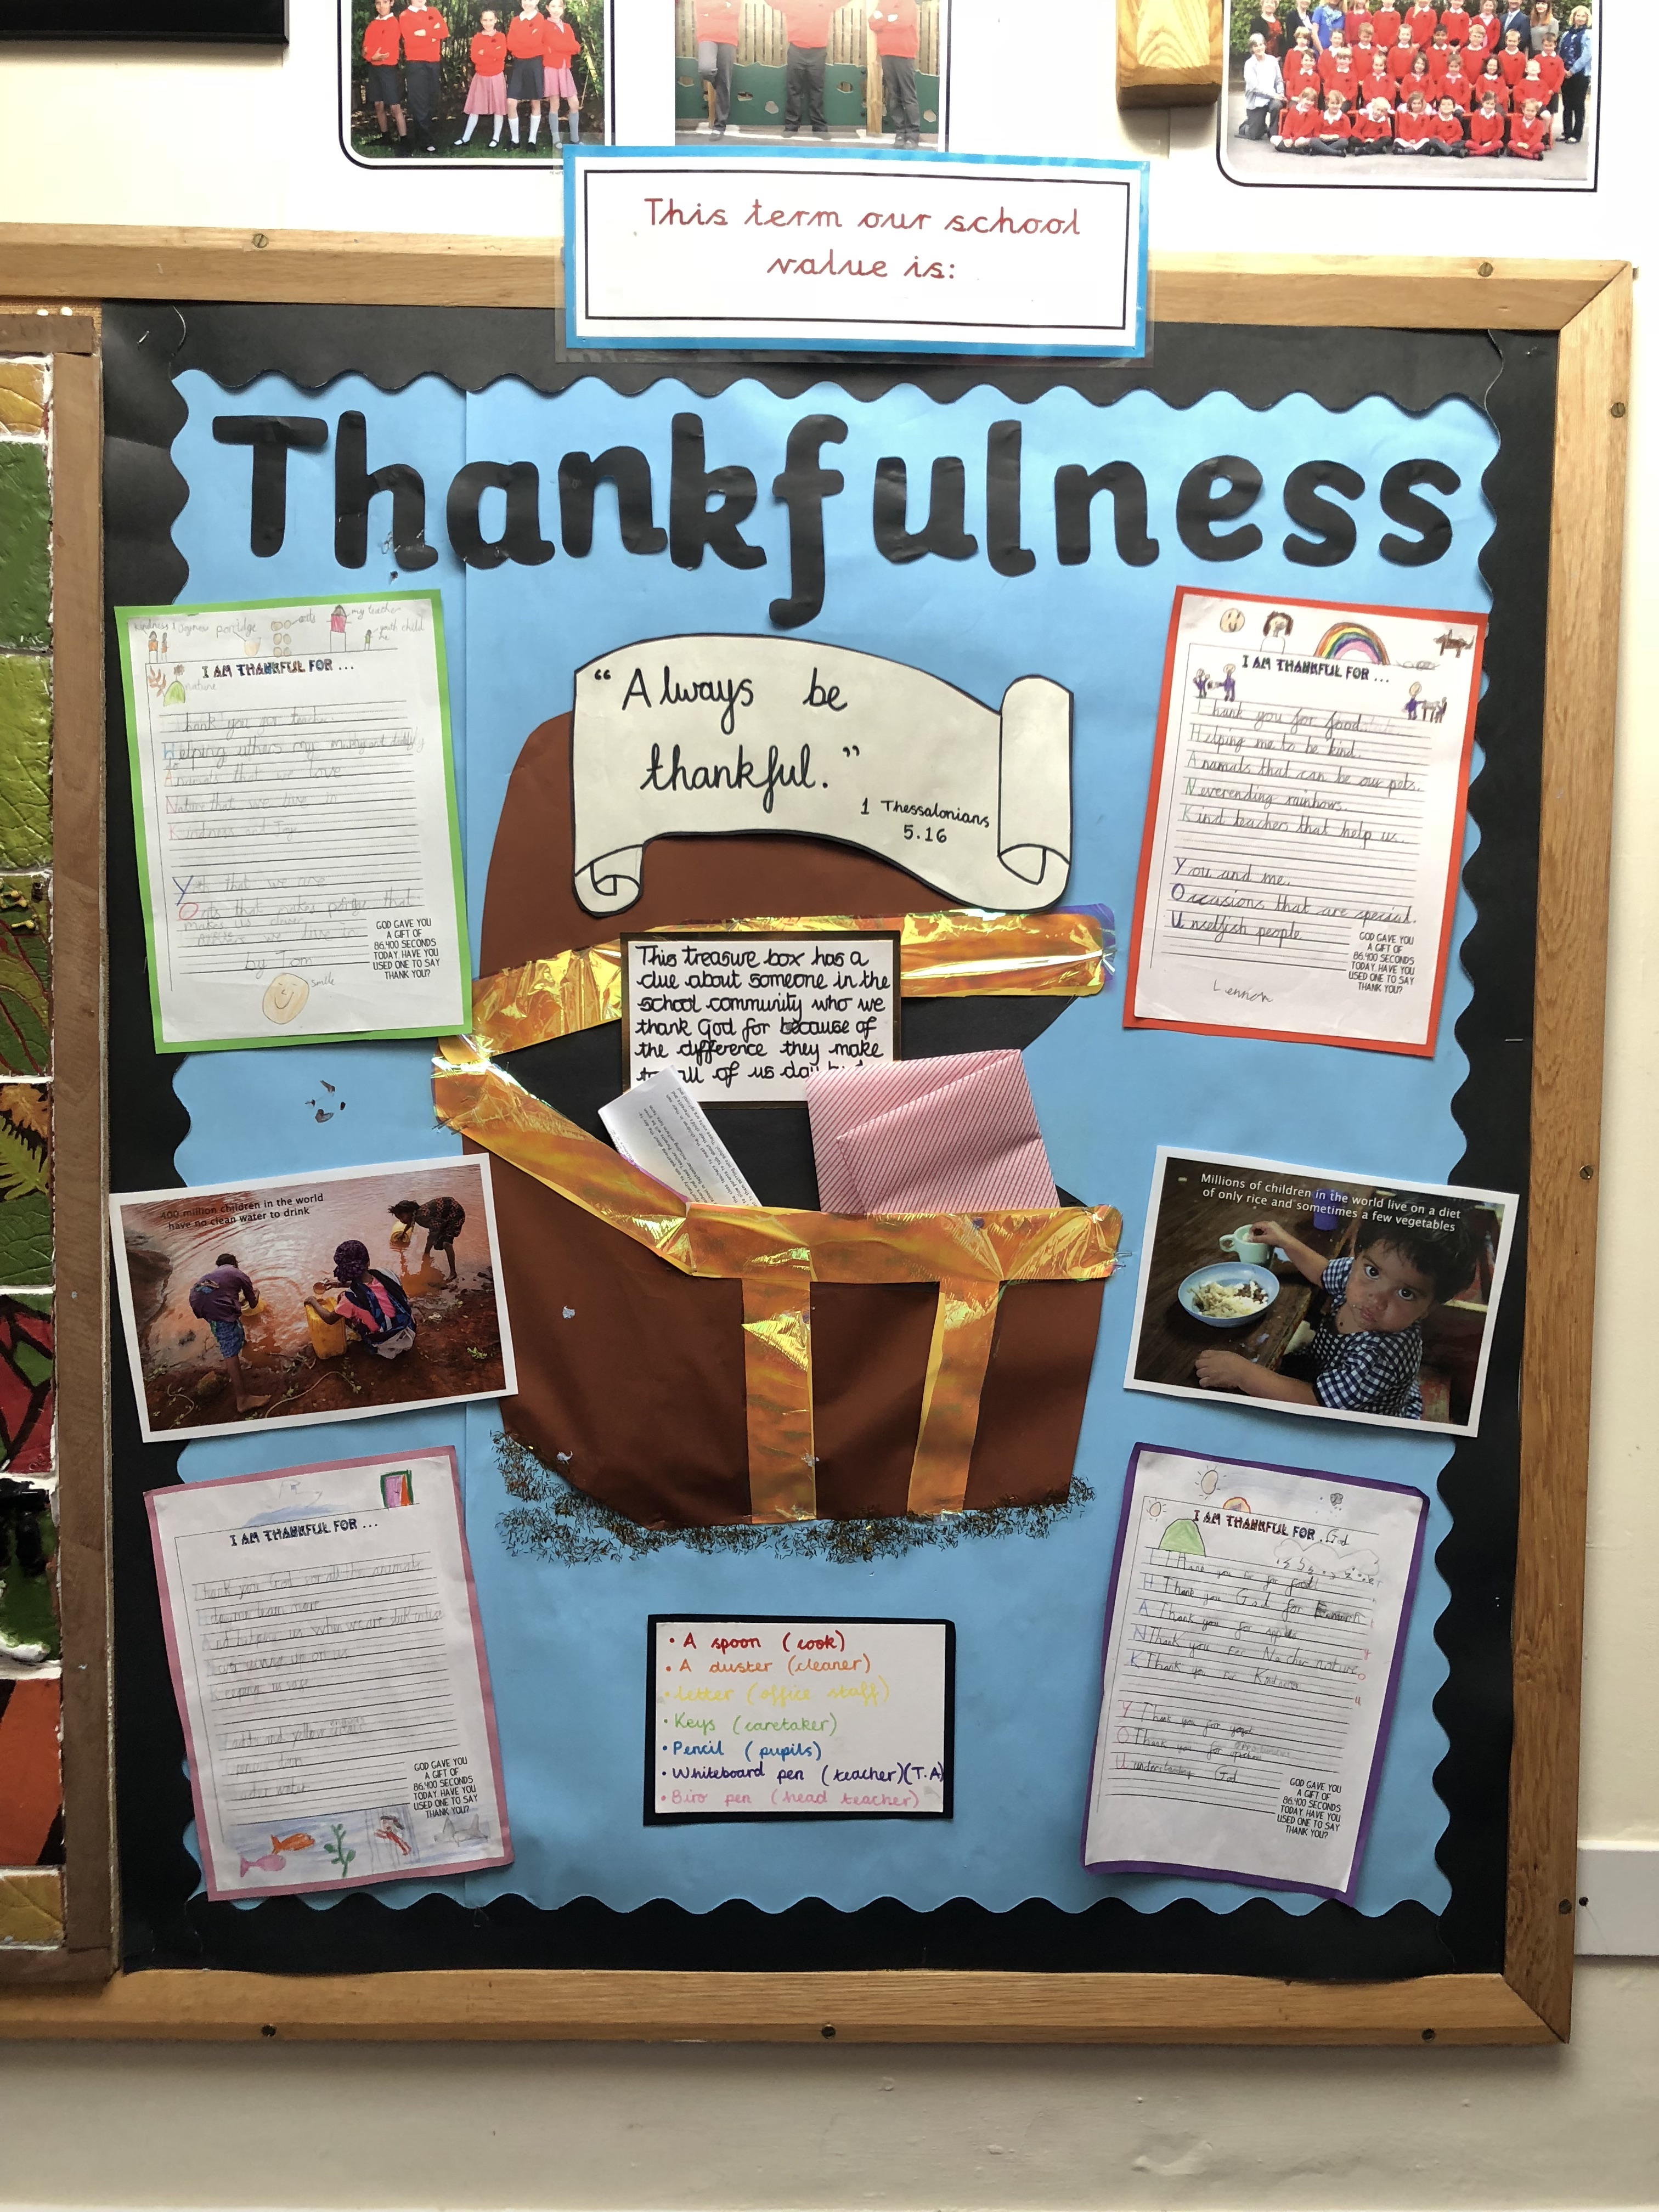 Thankfulness display at Cutcombe.jpg